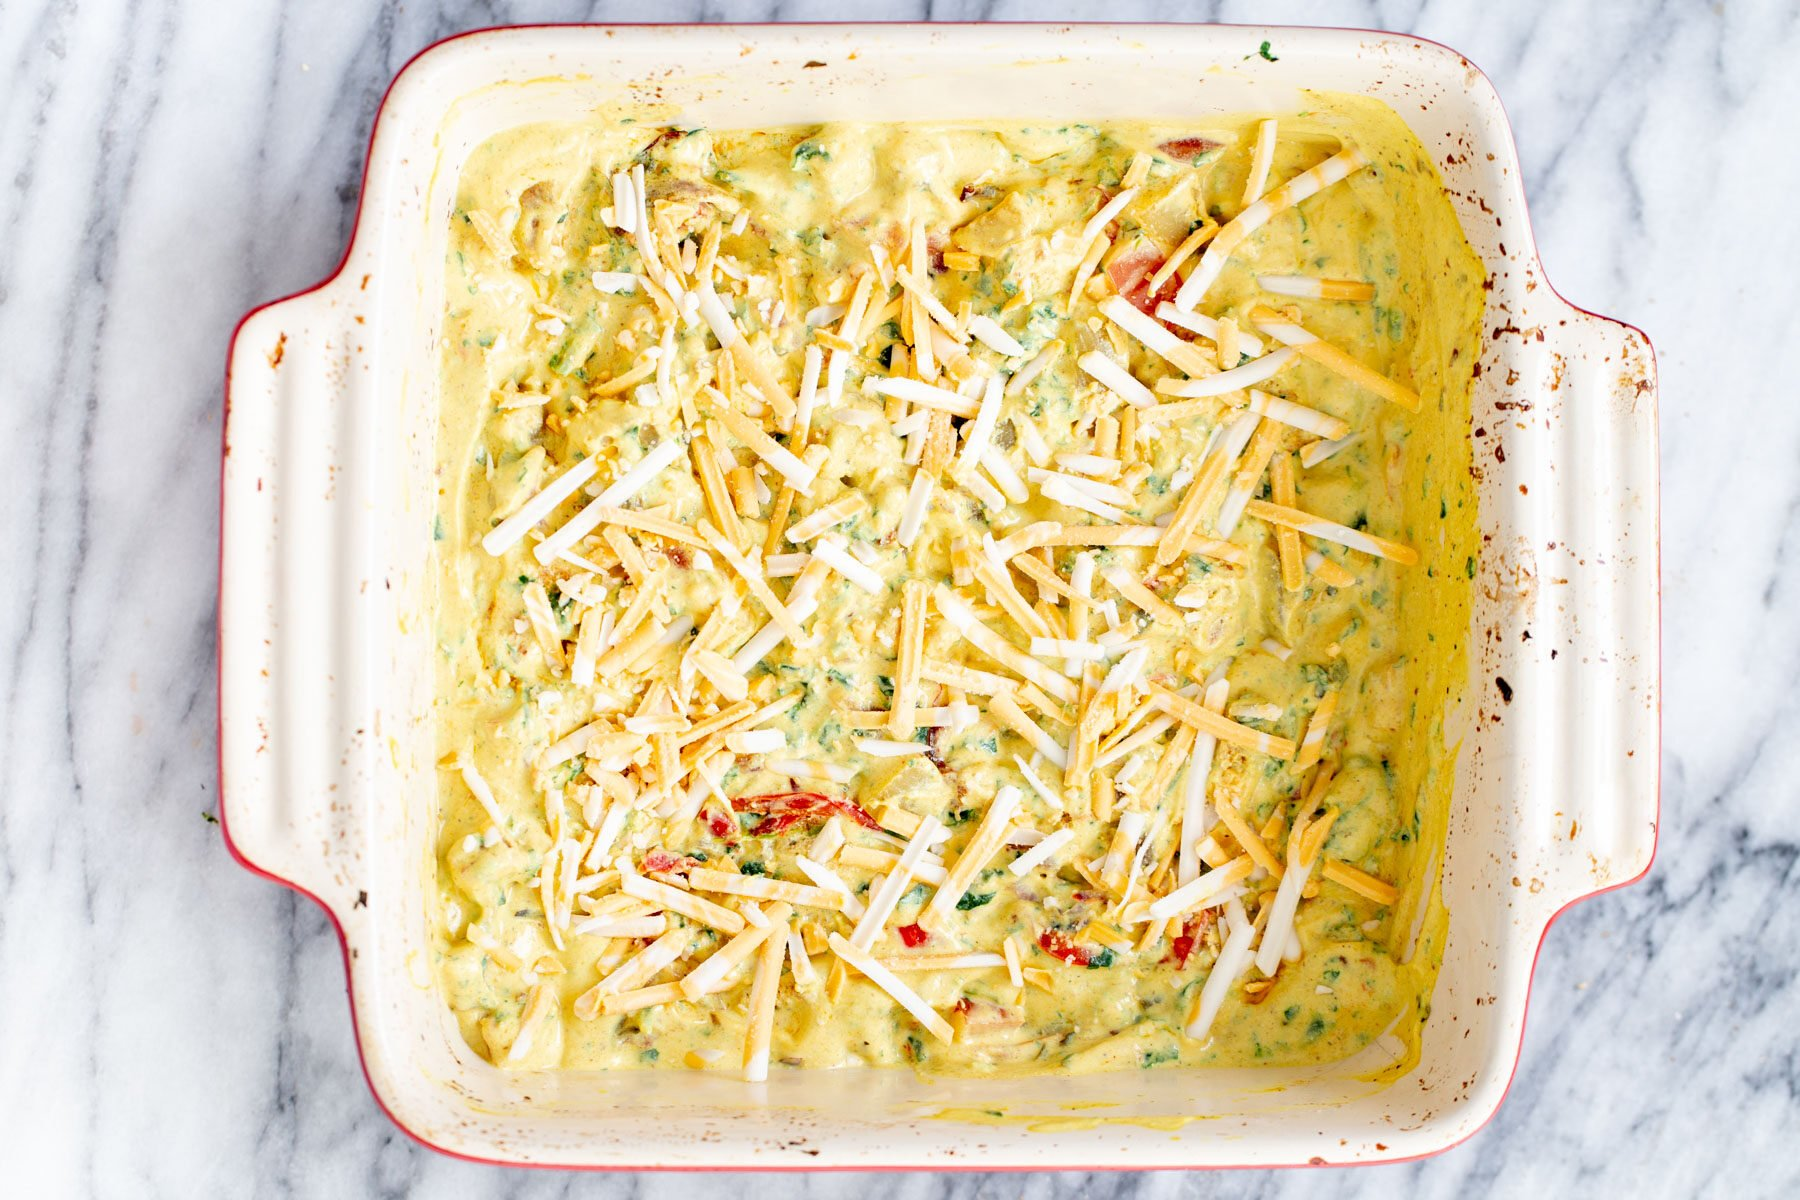 vegan egg breakfast casserole being topped with shredded cheese